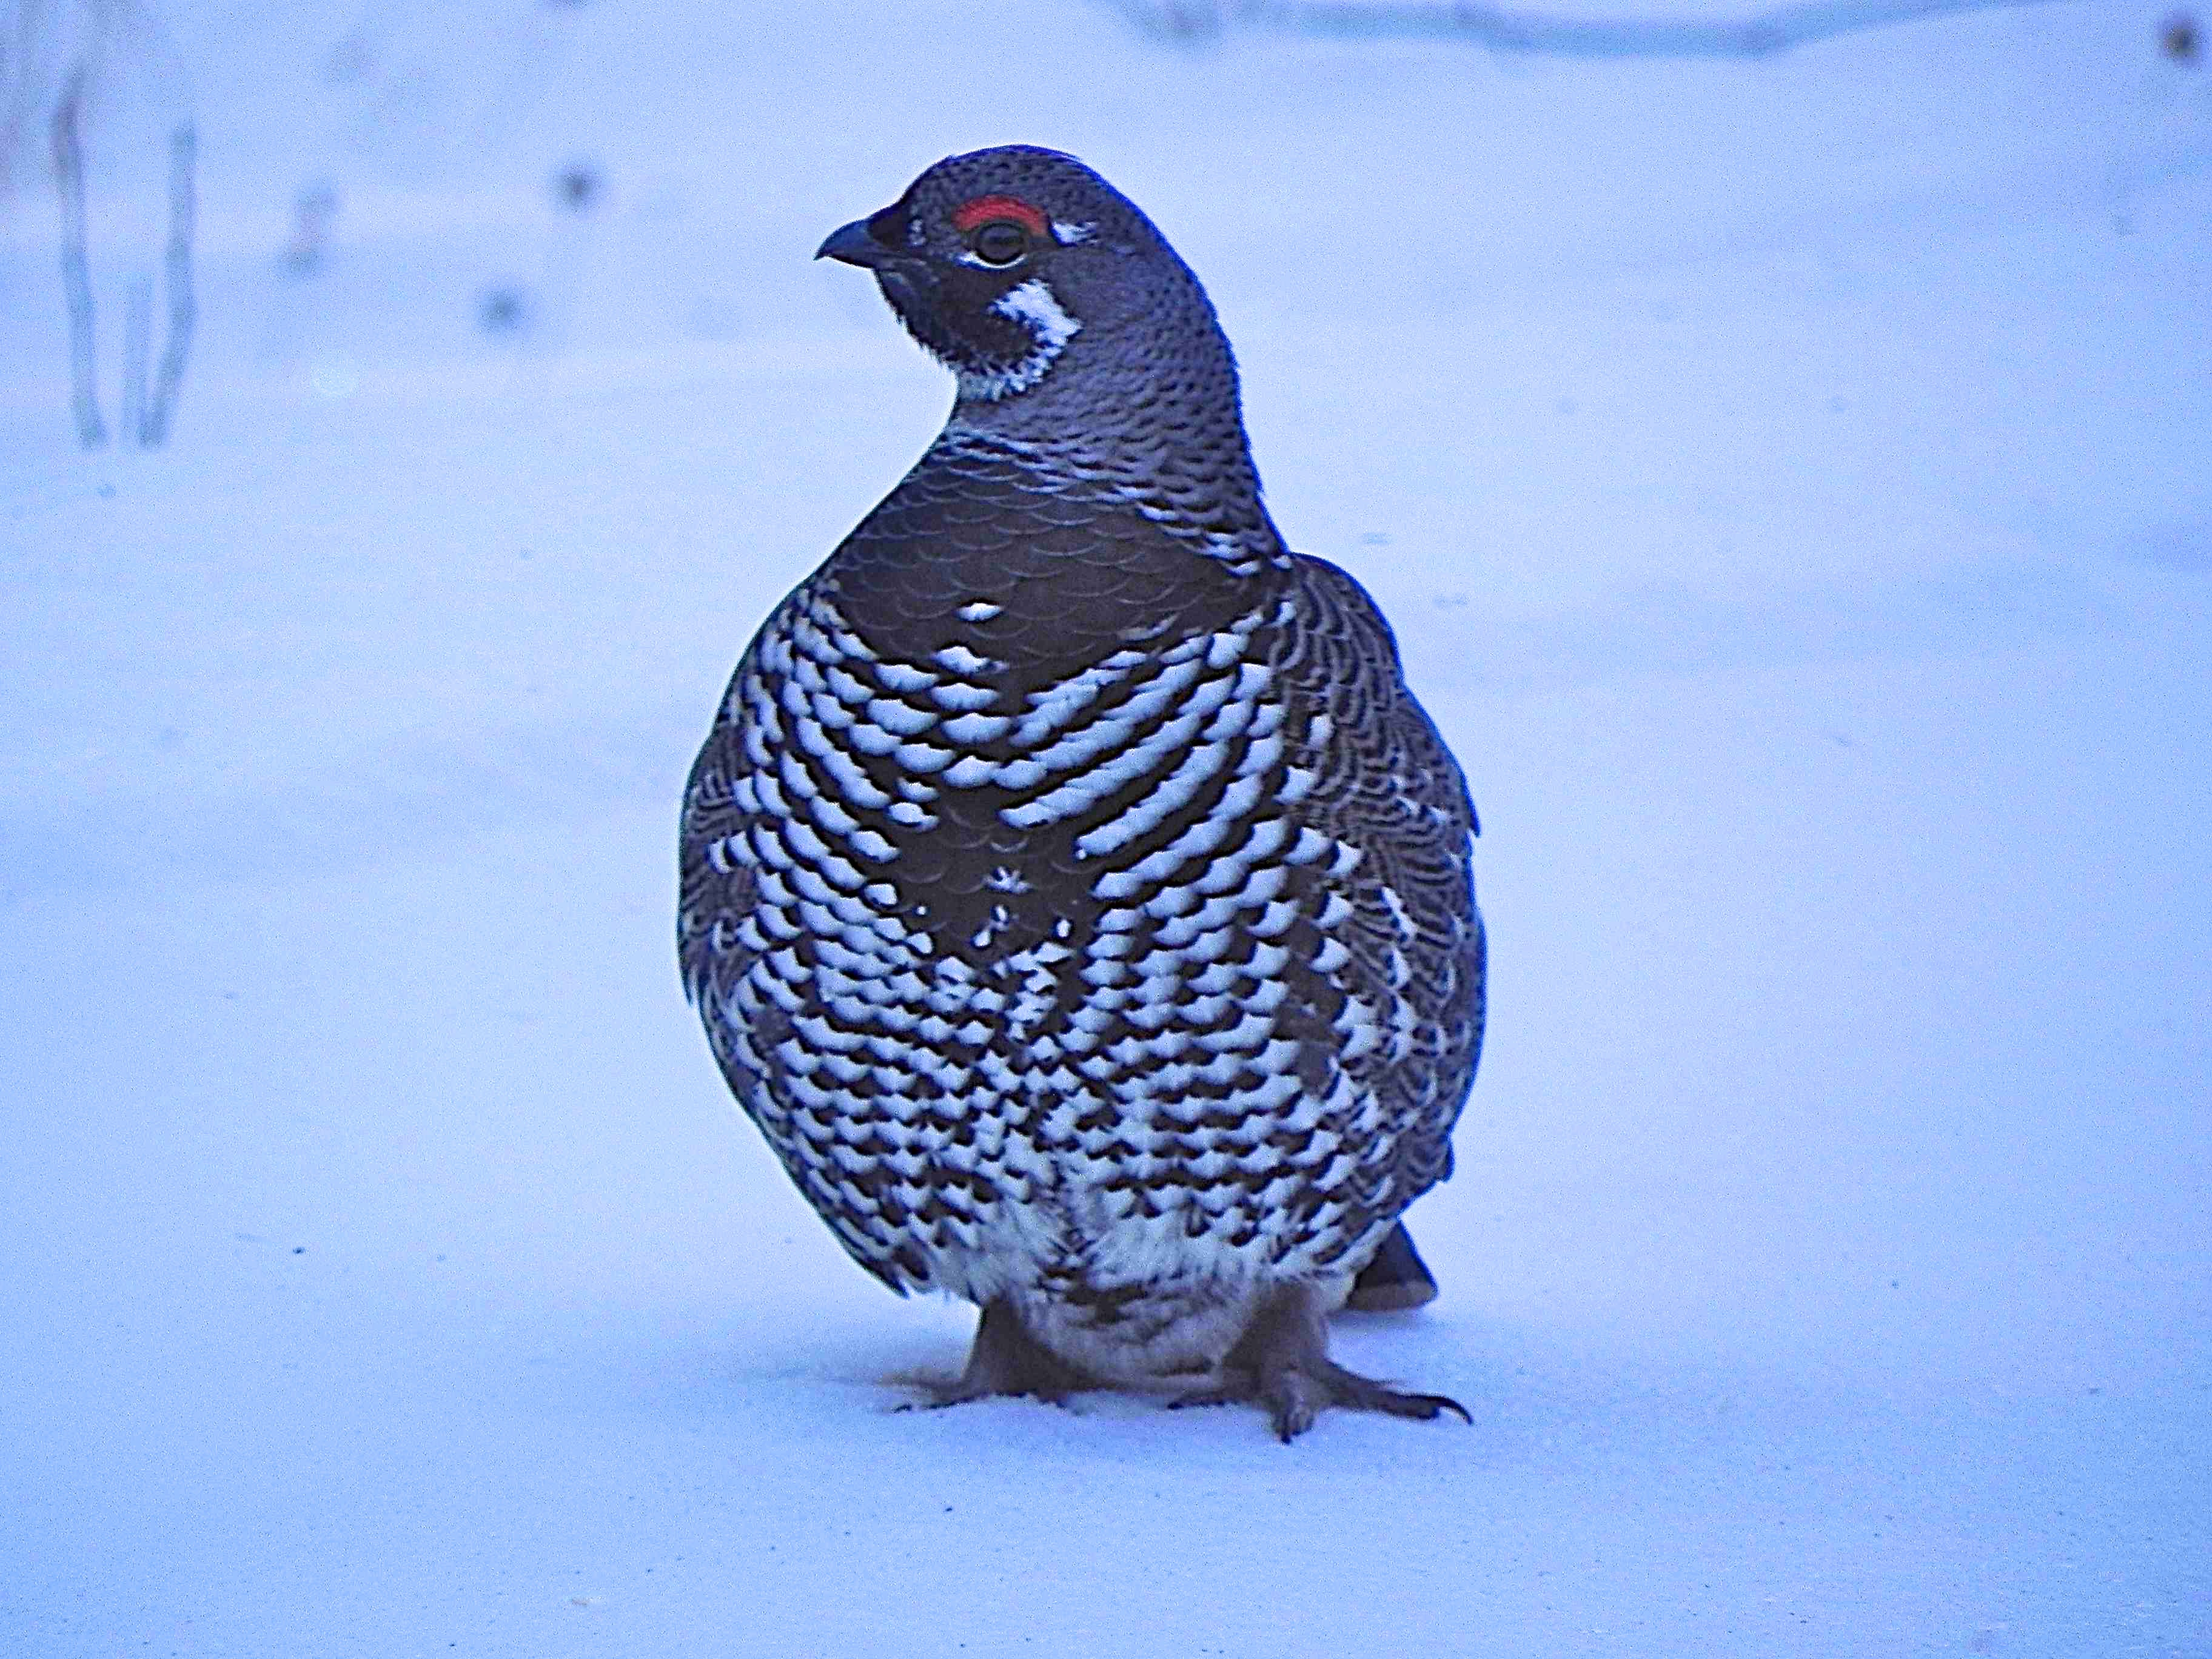 Spruce Grouse by B. Winckler